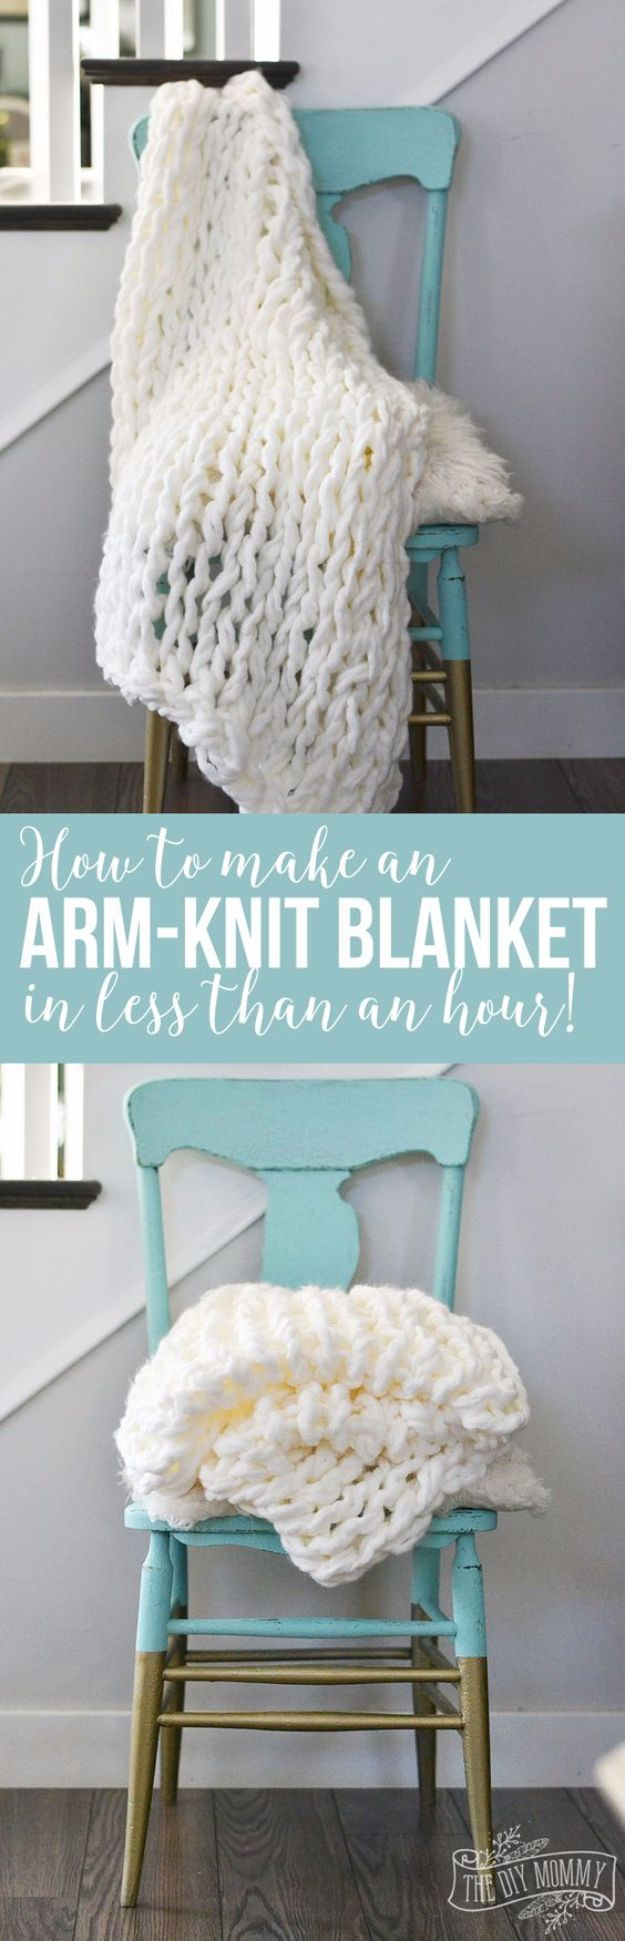 35 Cheap And Easy Gifts For The Office Diy Home Decor